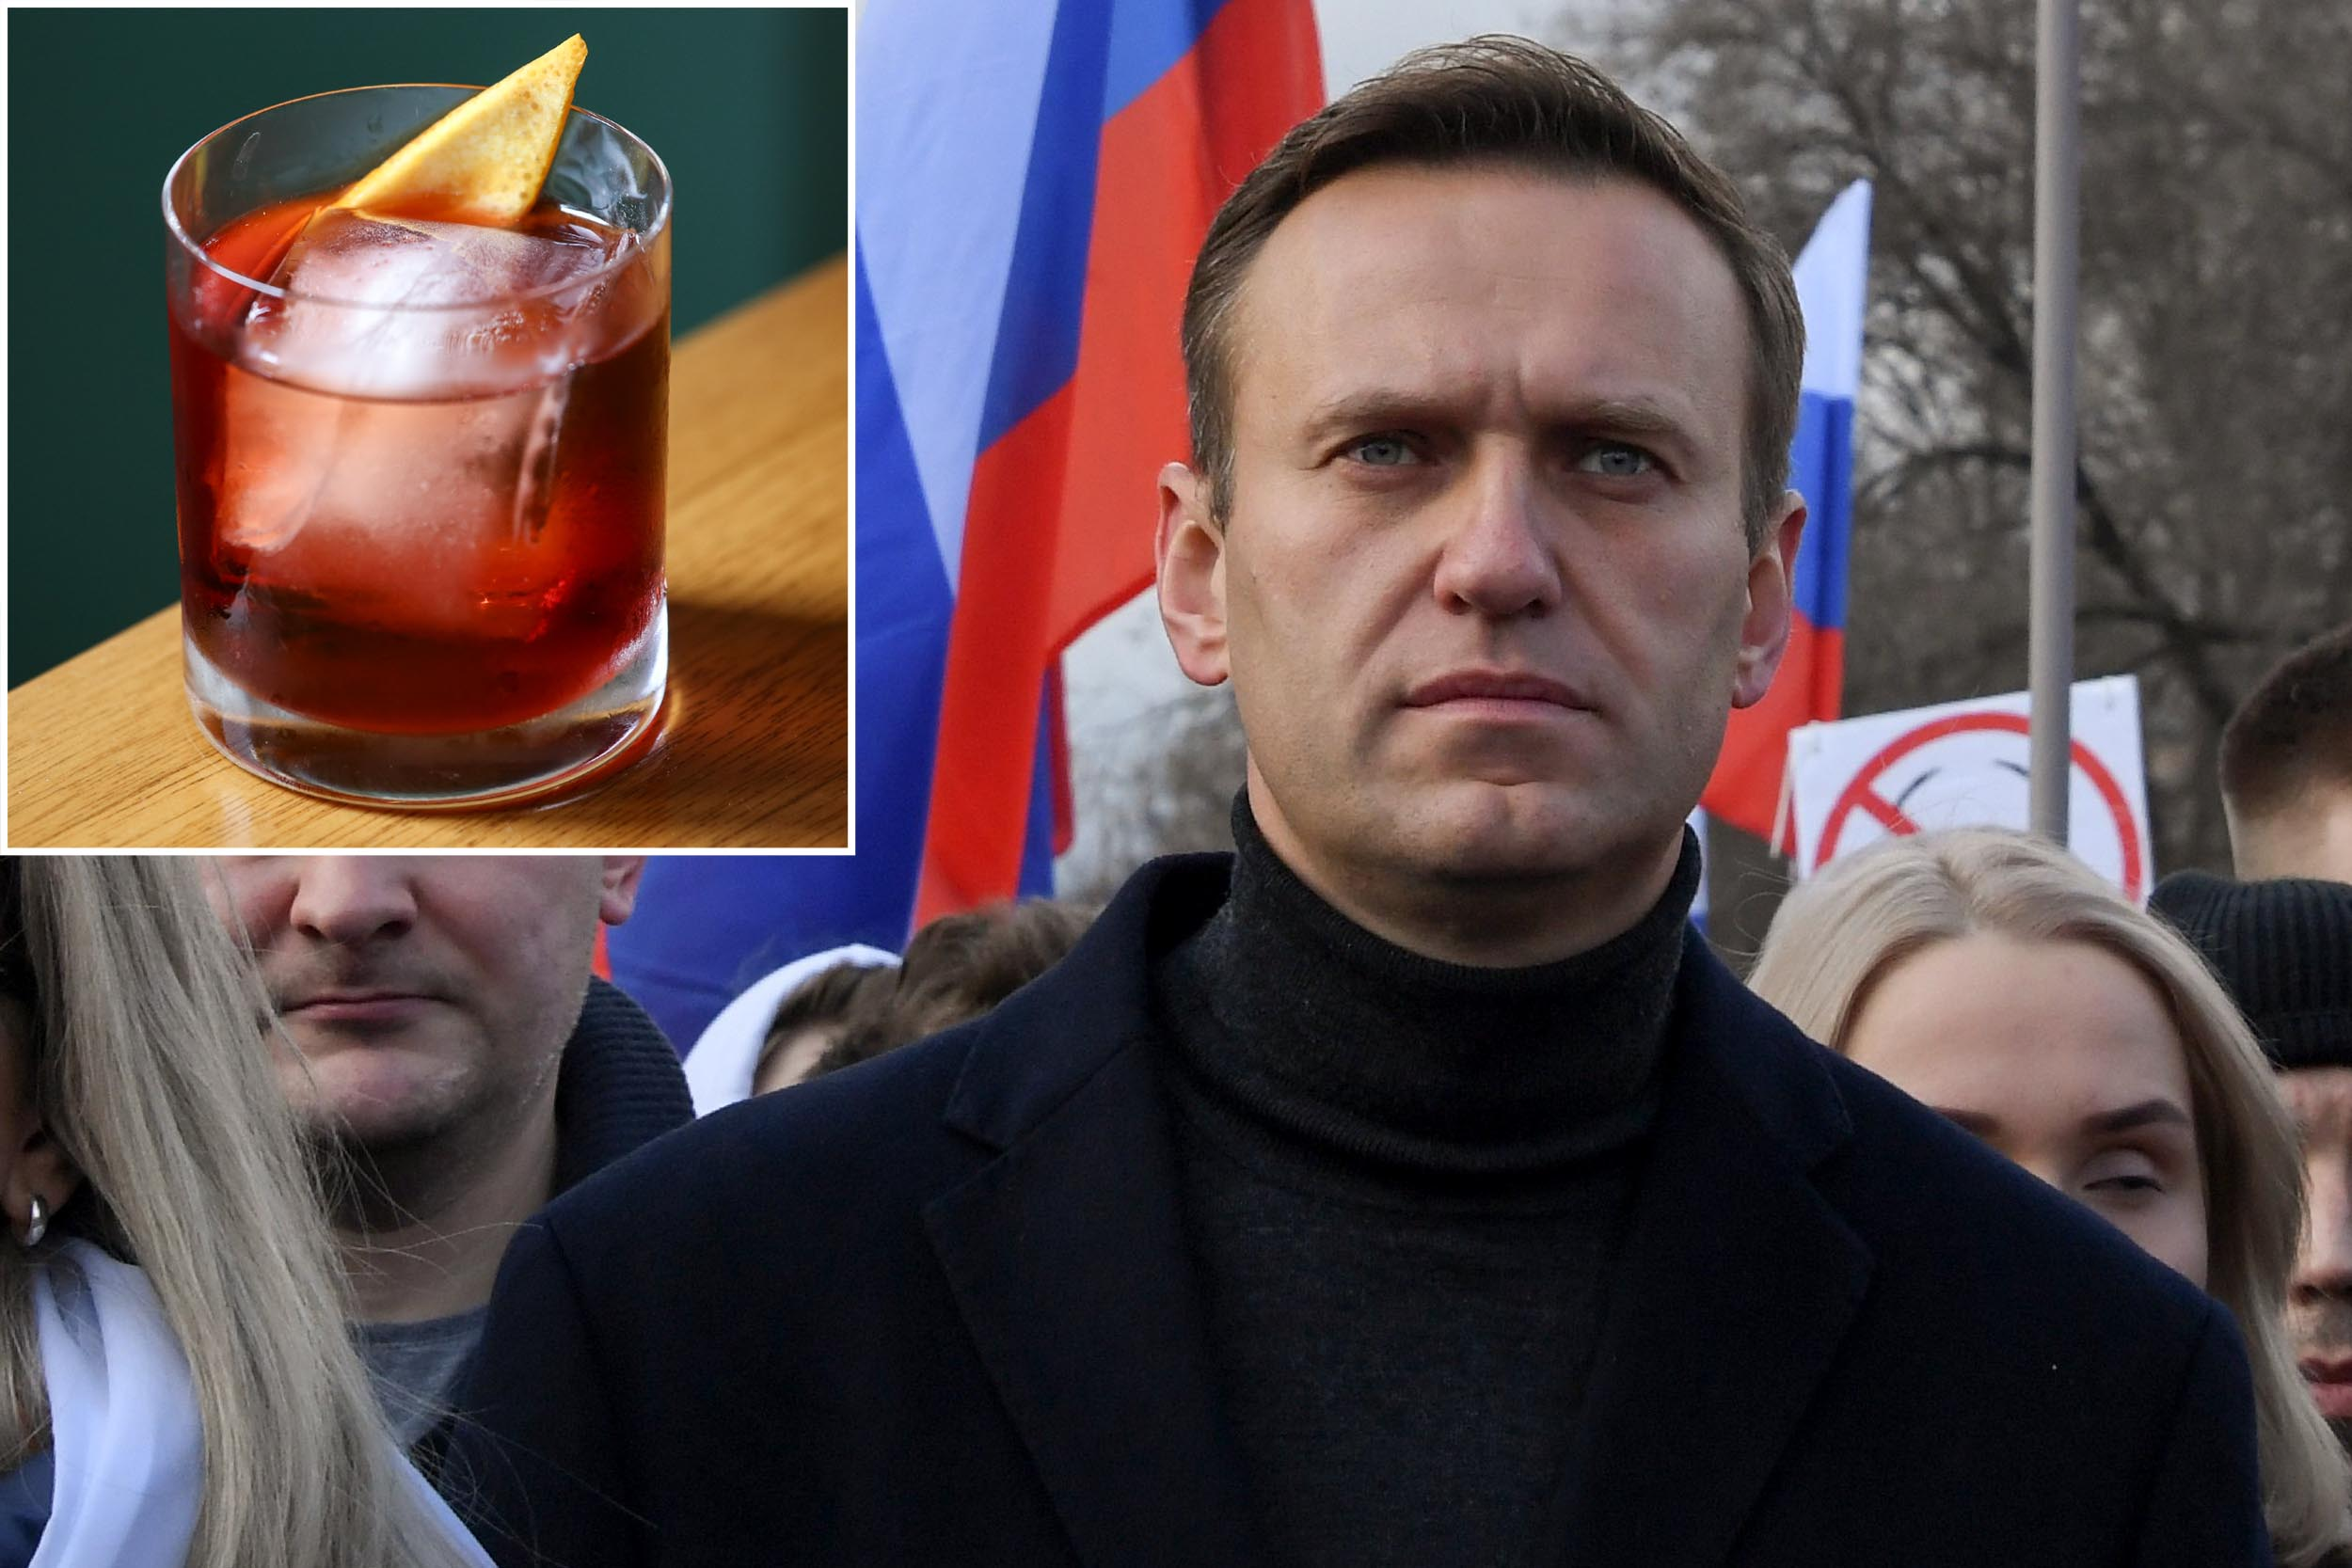 Russia tried to kill Alexei Navalny with a poisoned Negroni: probe